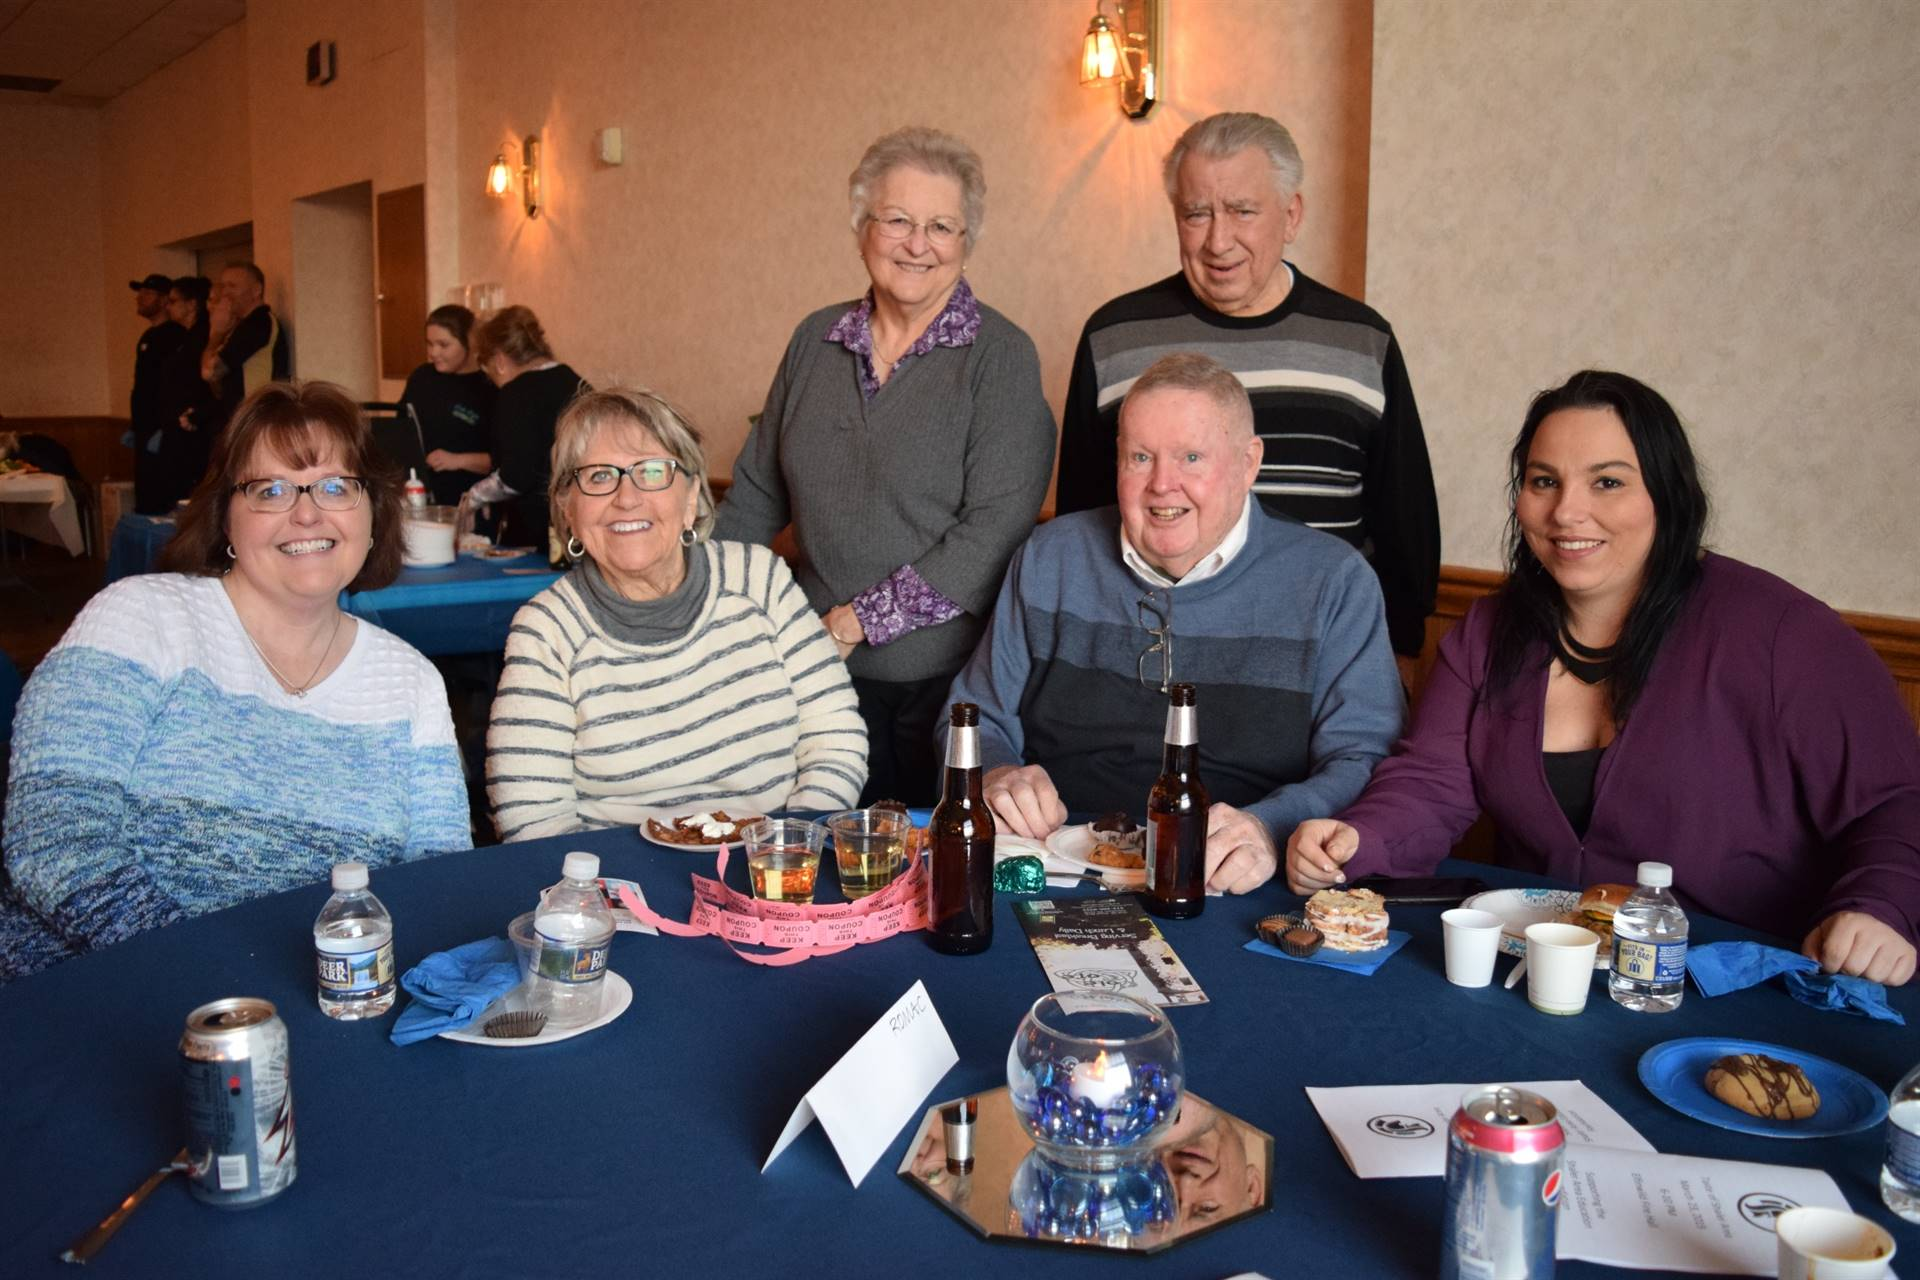 six people posing at a table